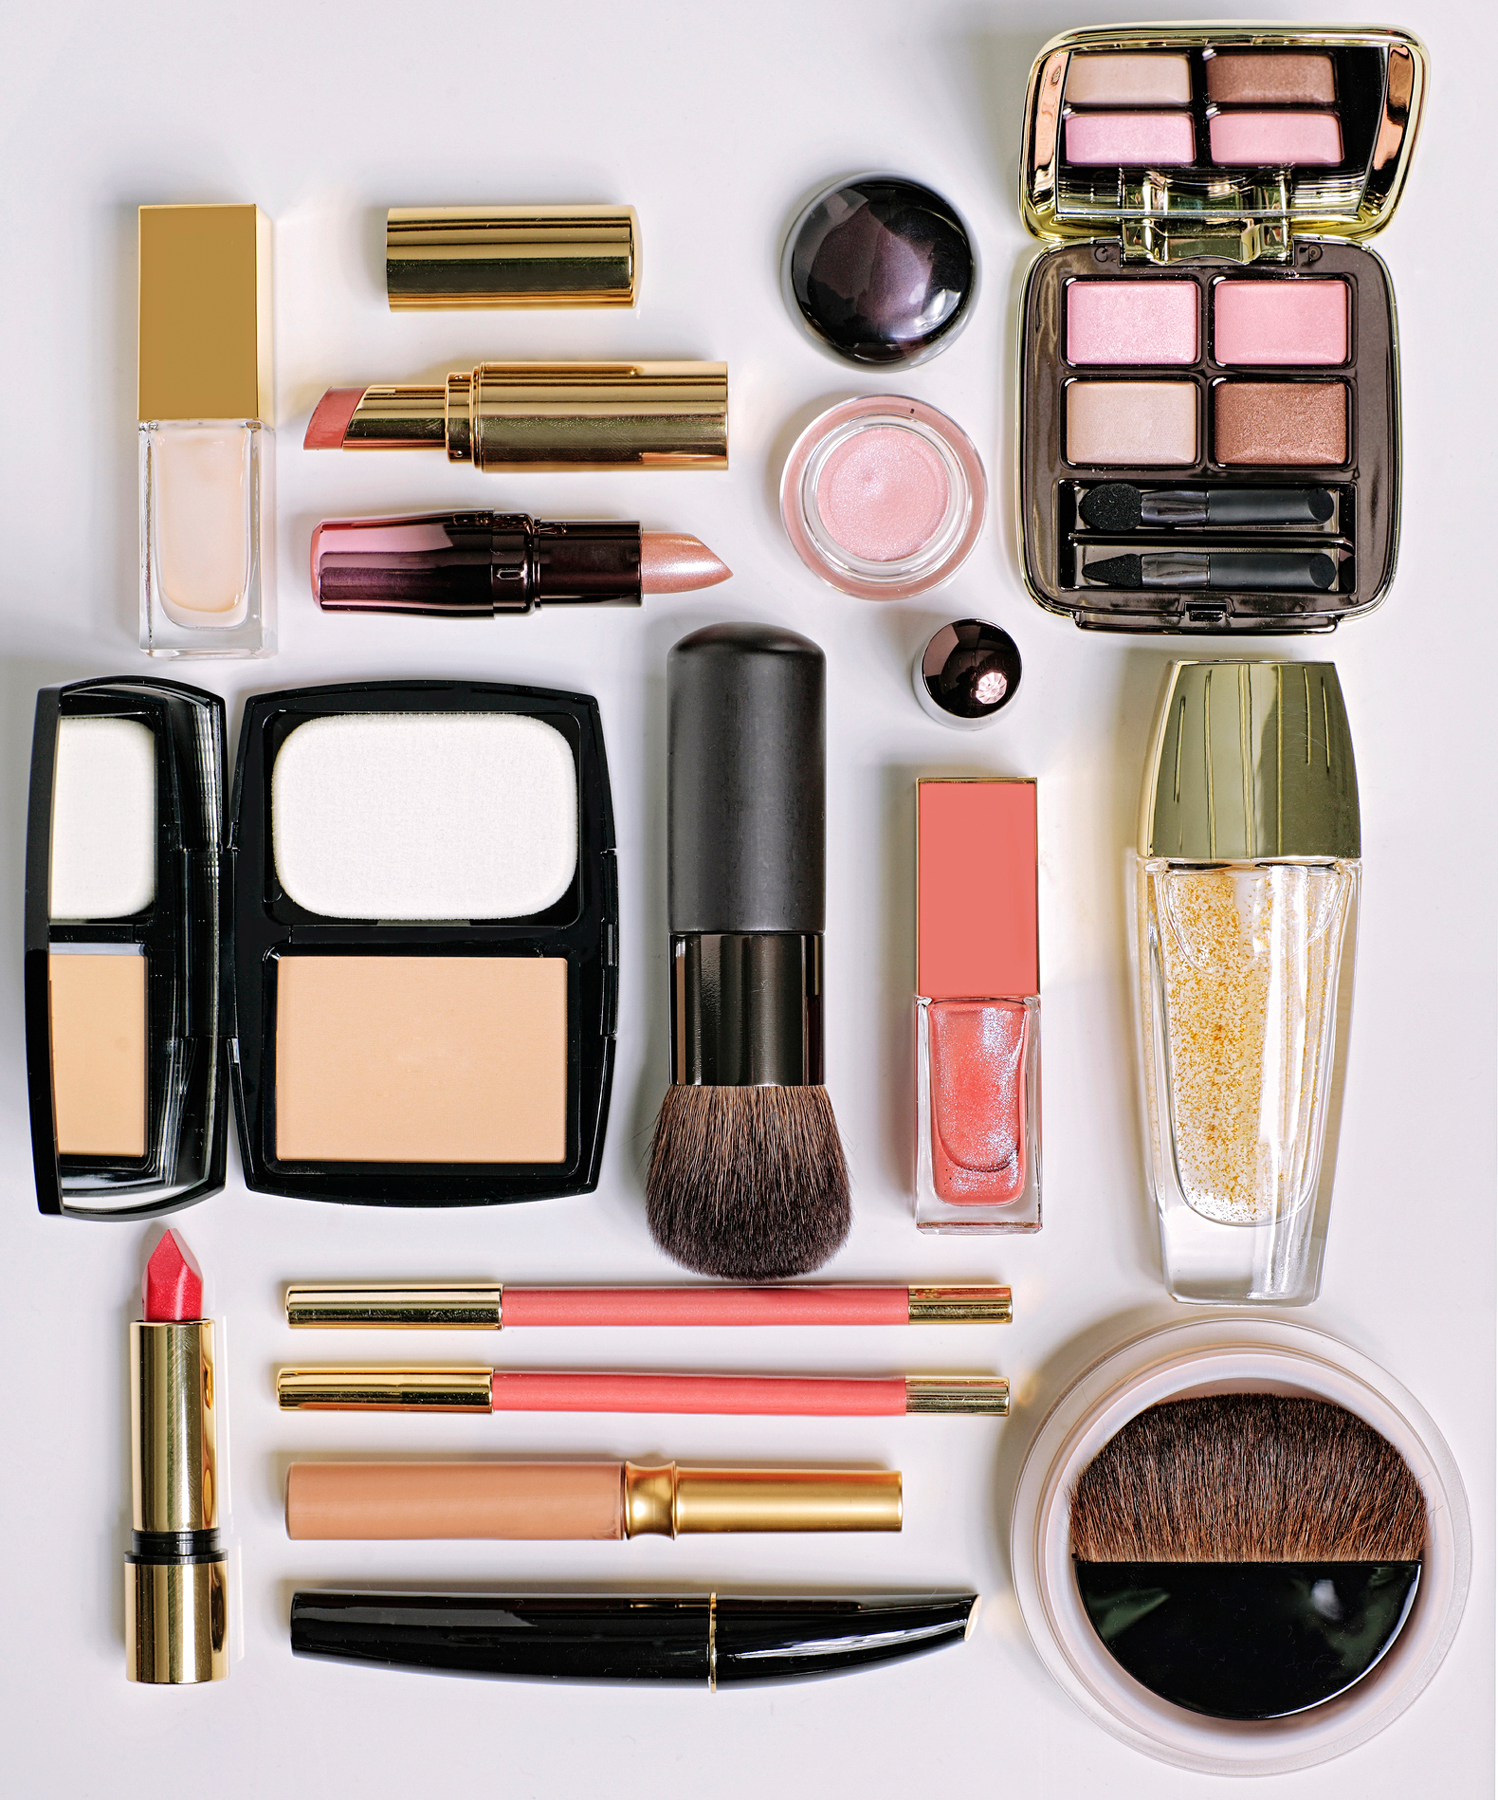 Step 1: Clean Out Your Beauty Collection